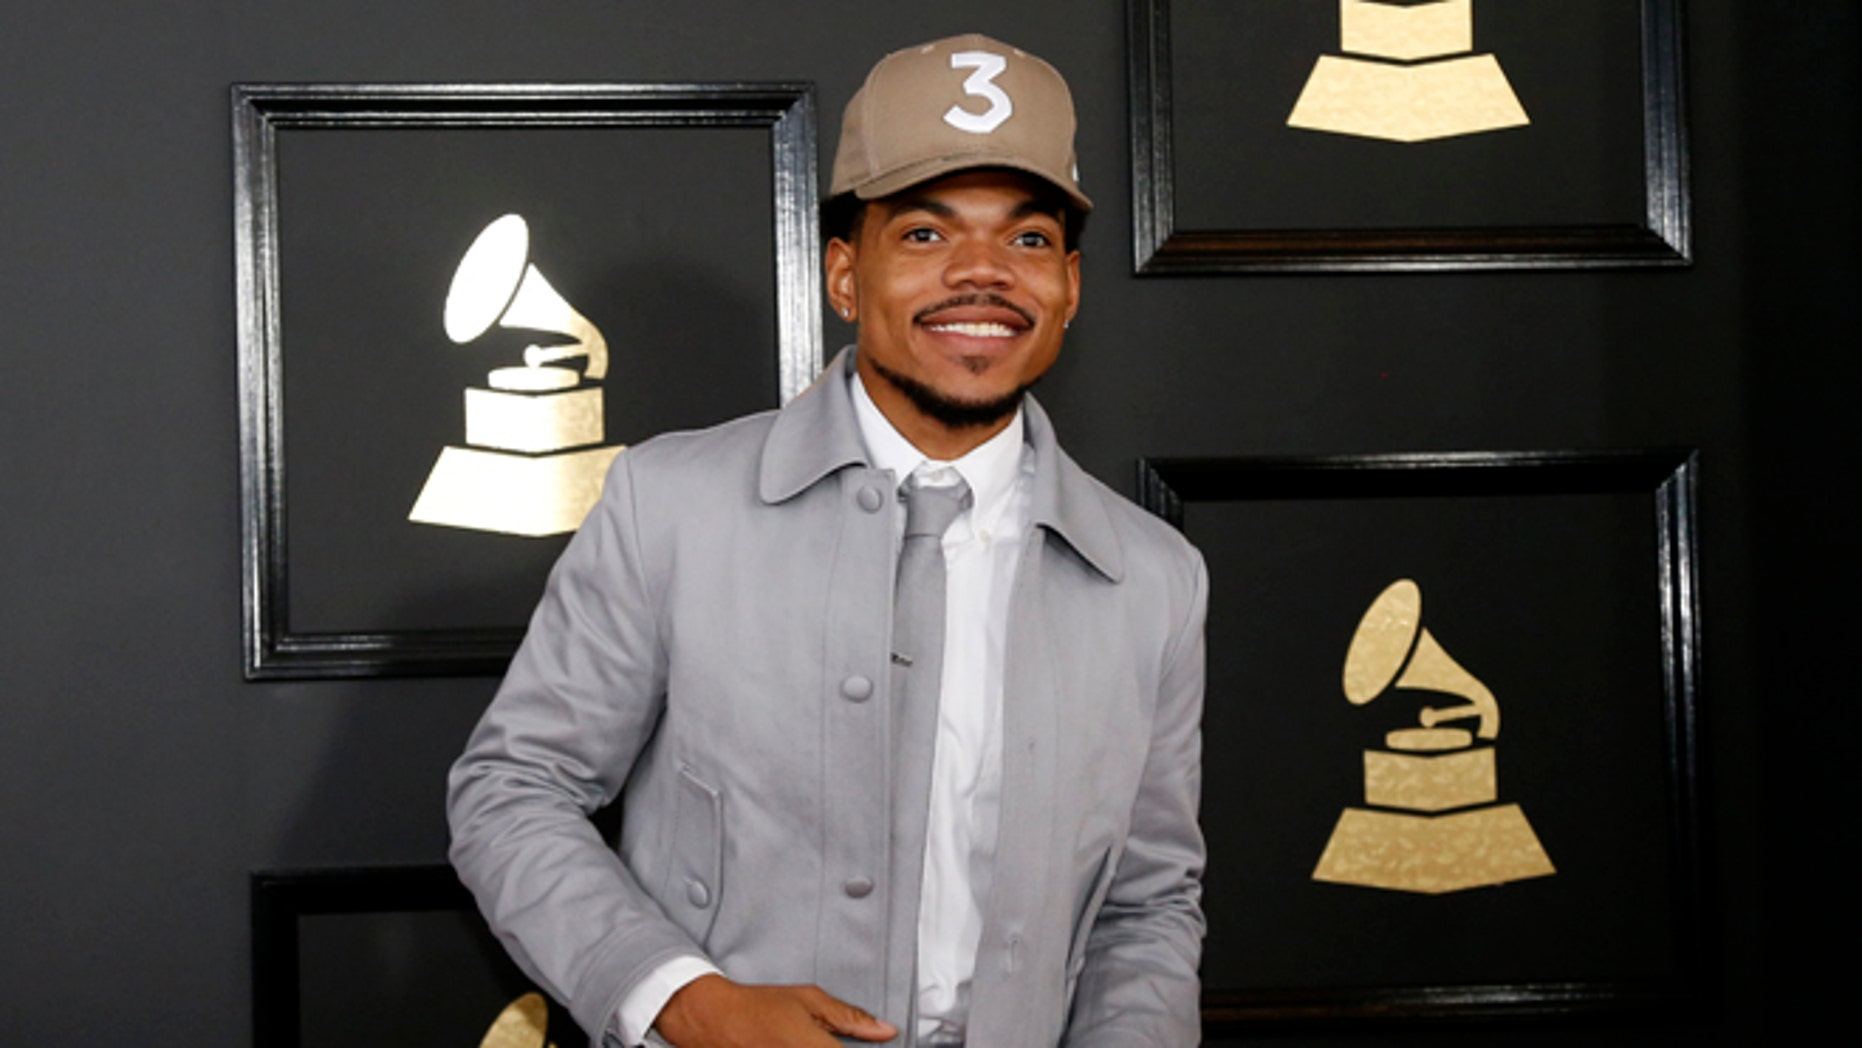 Chance The Rapper announced on Instagram on Friday that he is taking his first sabbatical.